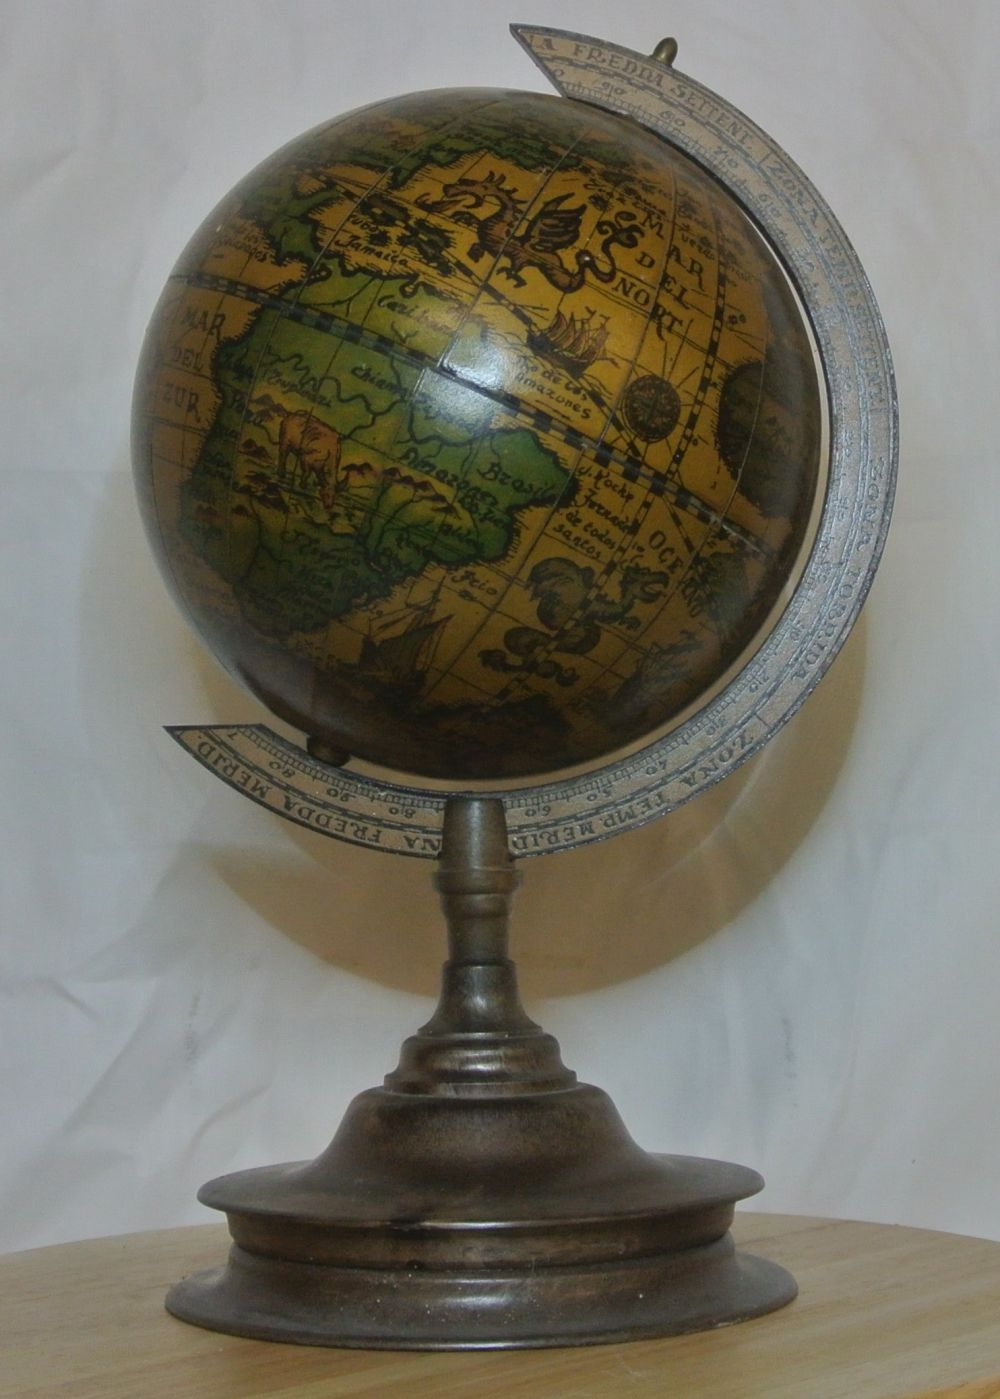 An antique style globe with bakelite base.